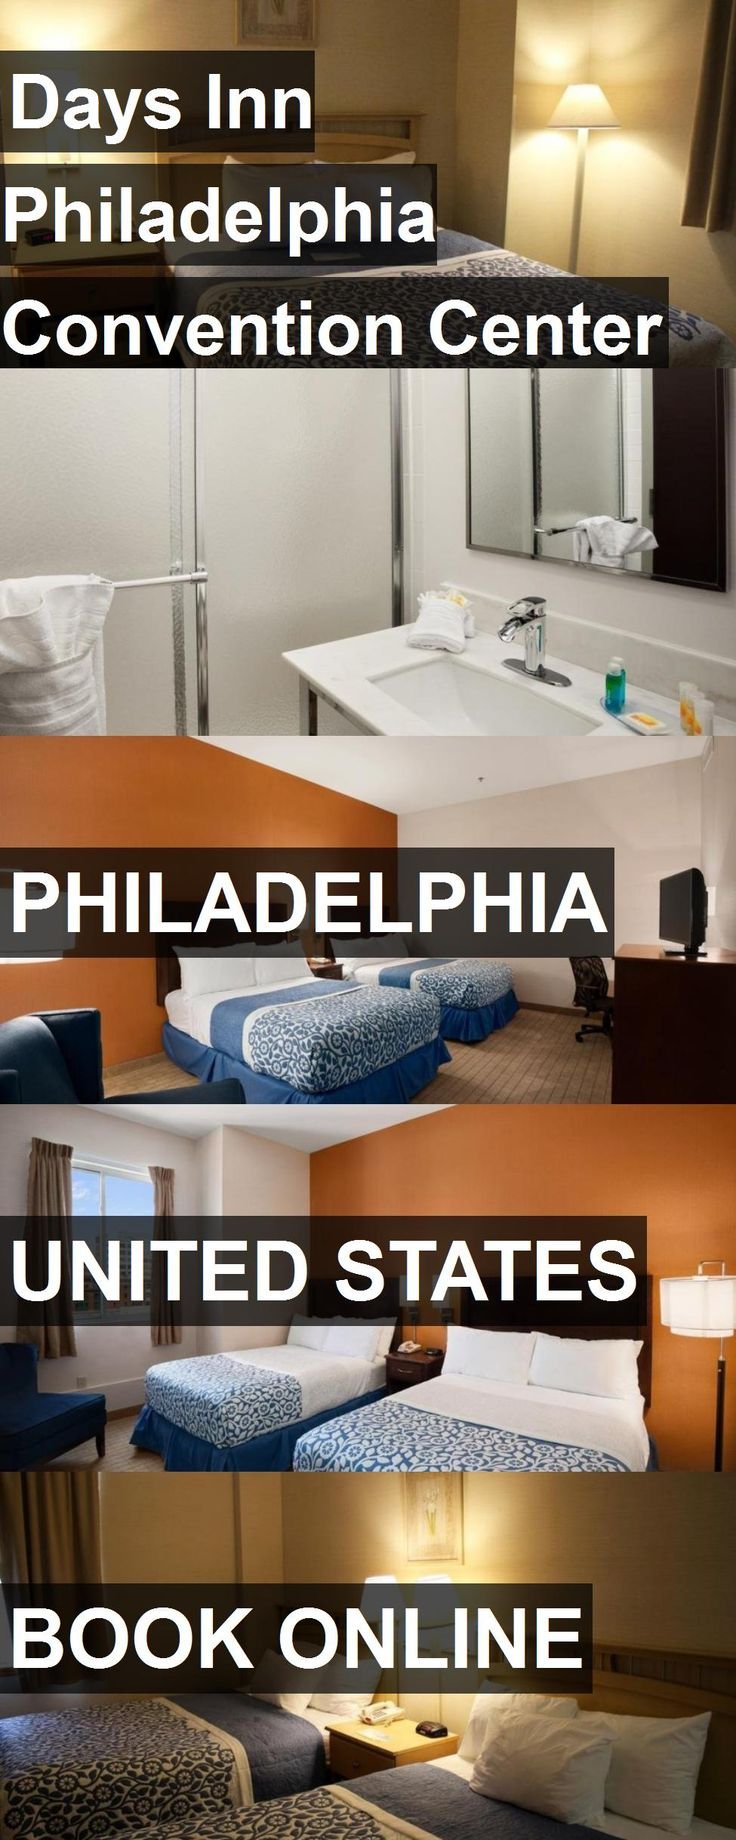 Hotel Days Inn Philadelphia Convention Center in Philadelphia, United States. For more information, photos, reviews and best prices please follow the link. #UnitedStates #Philadelphia #DaysInnPhiladelphiaConventionCenter #hotel #travel #vacation